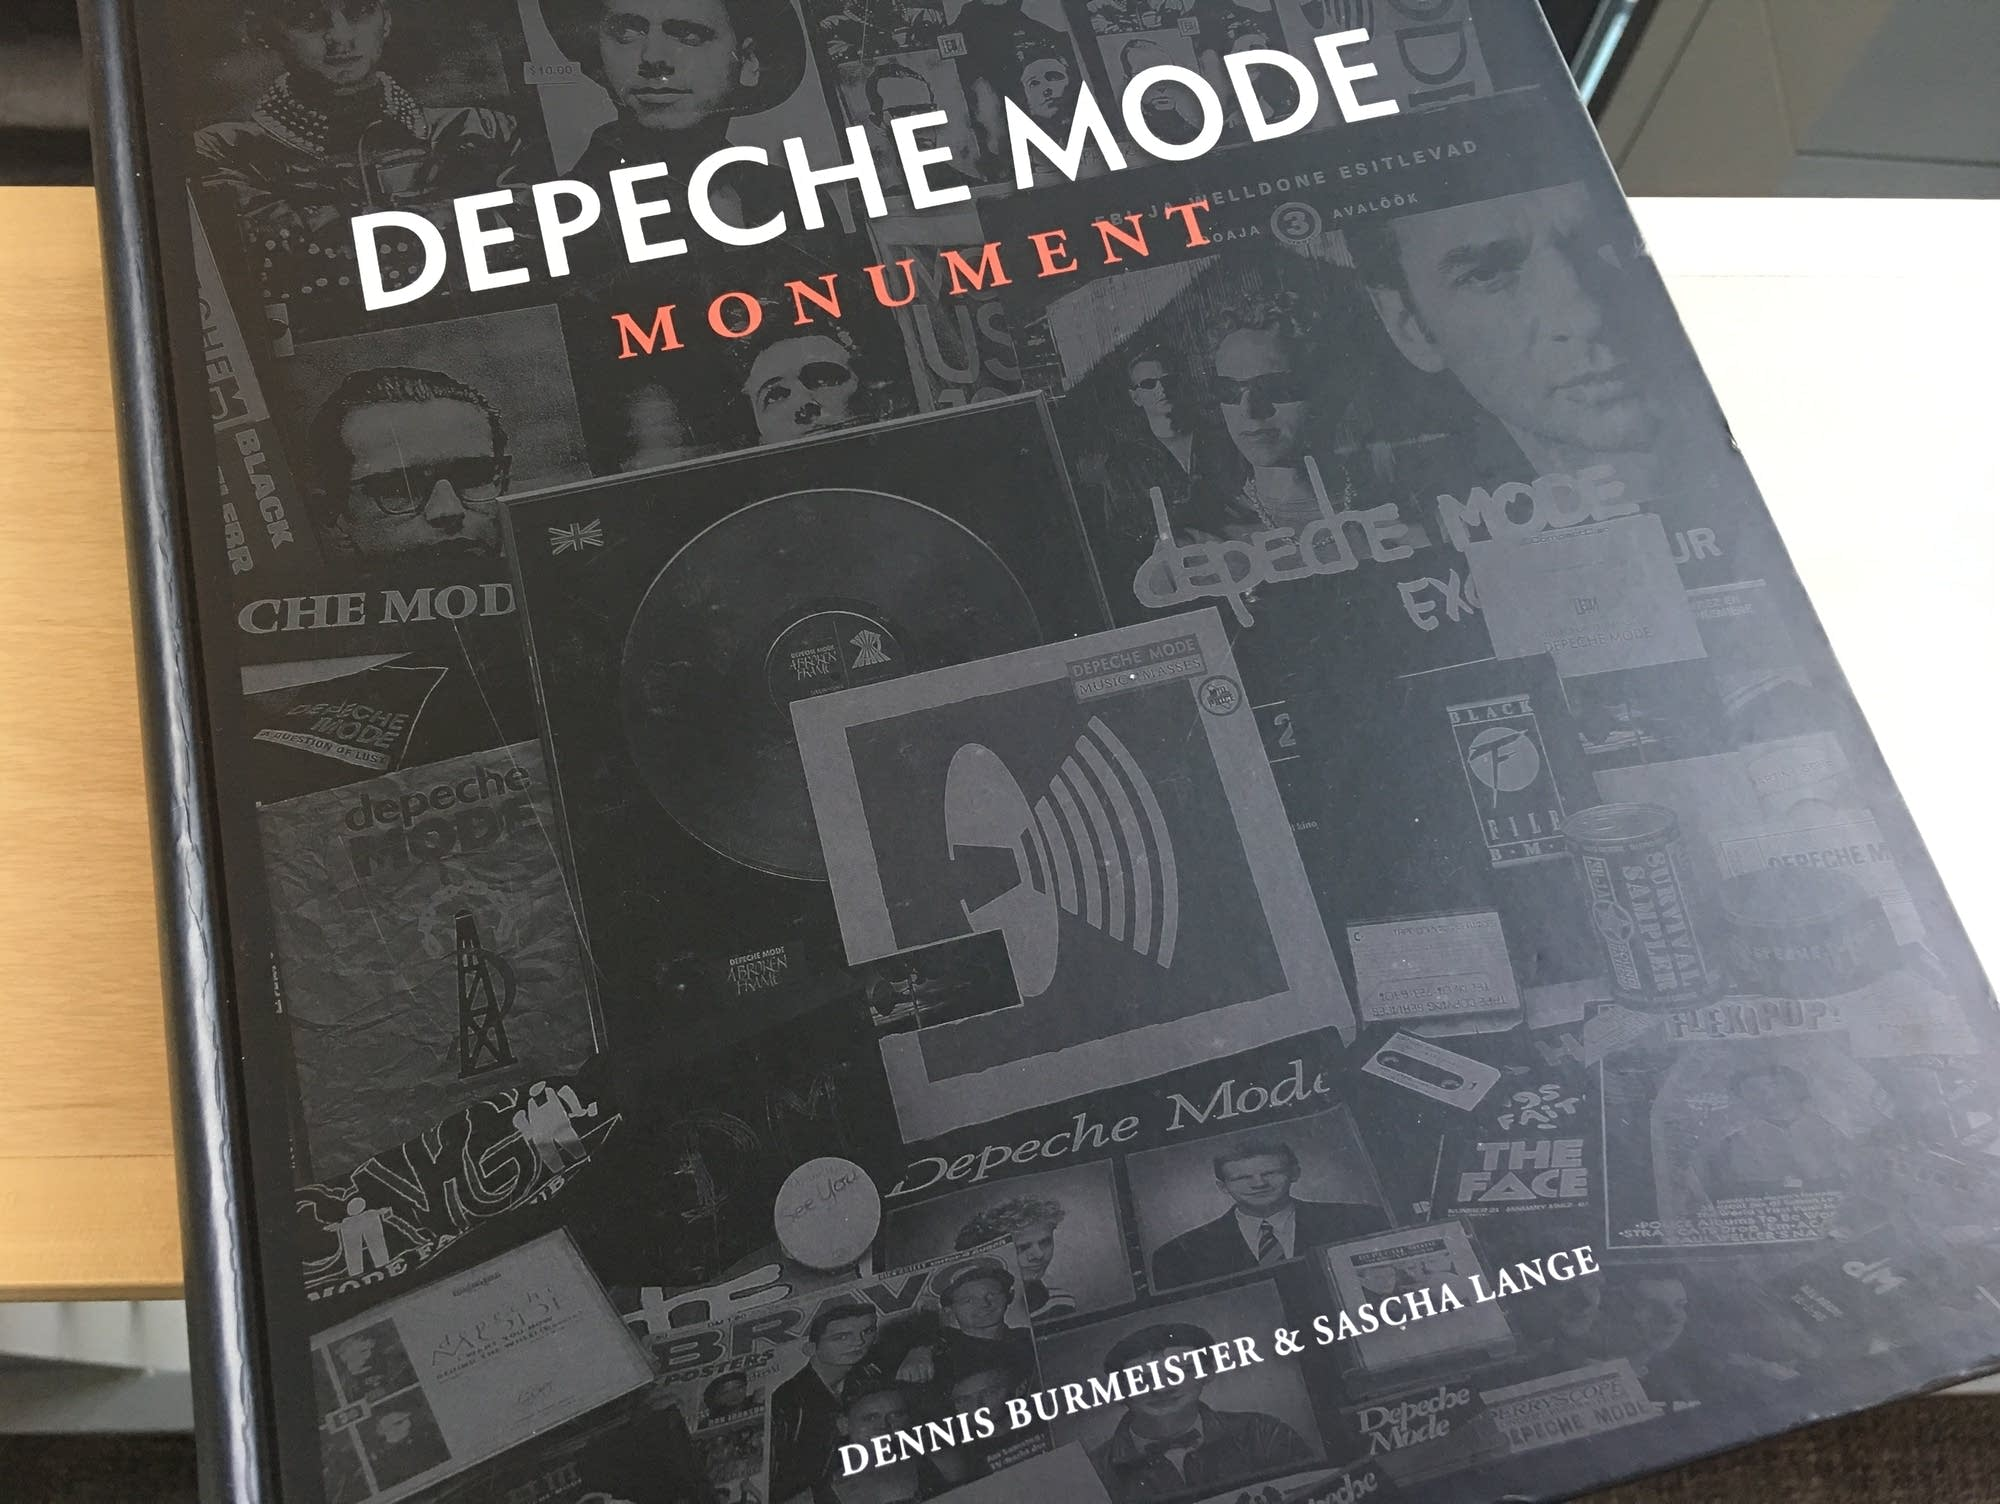 'Depeche Mode: Monument' chronicles four decades.